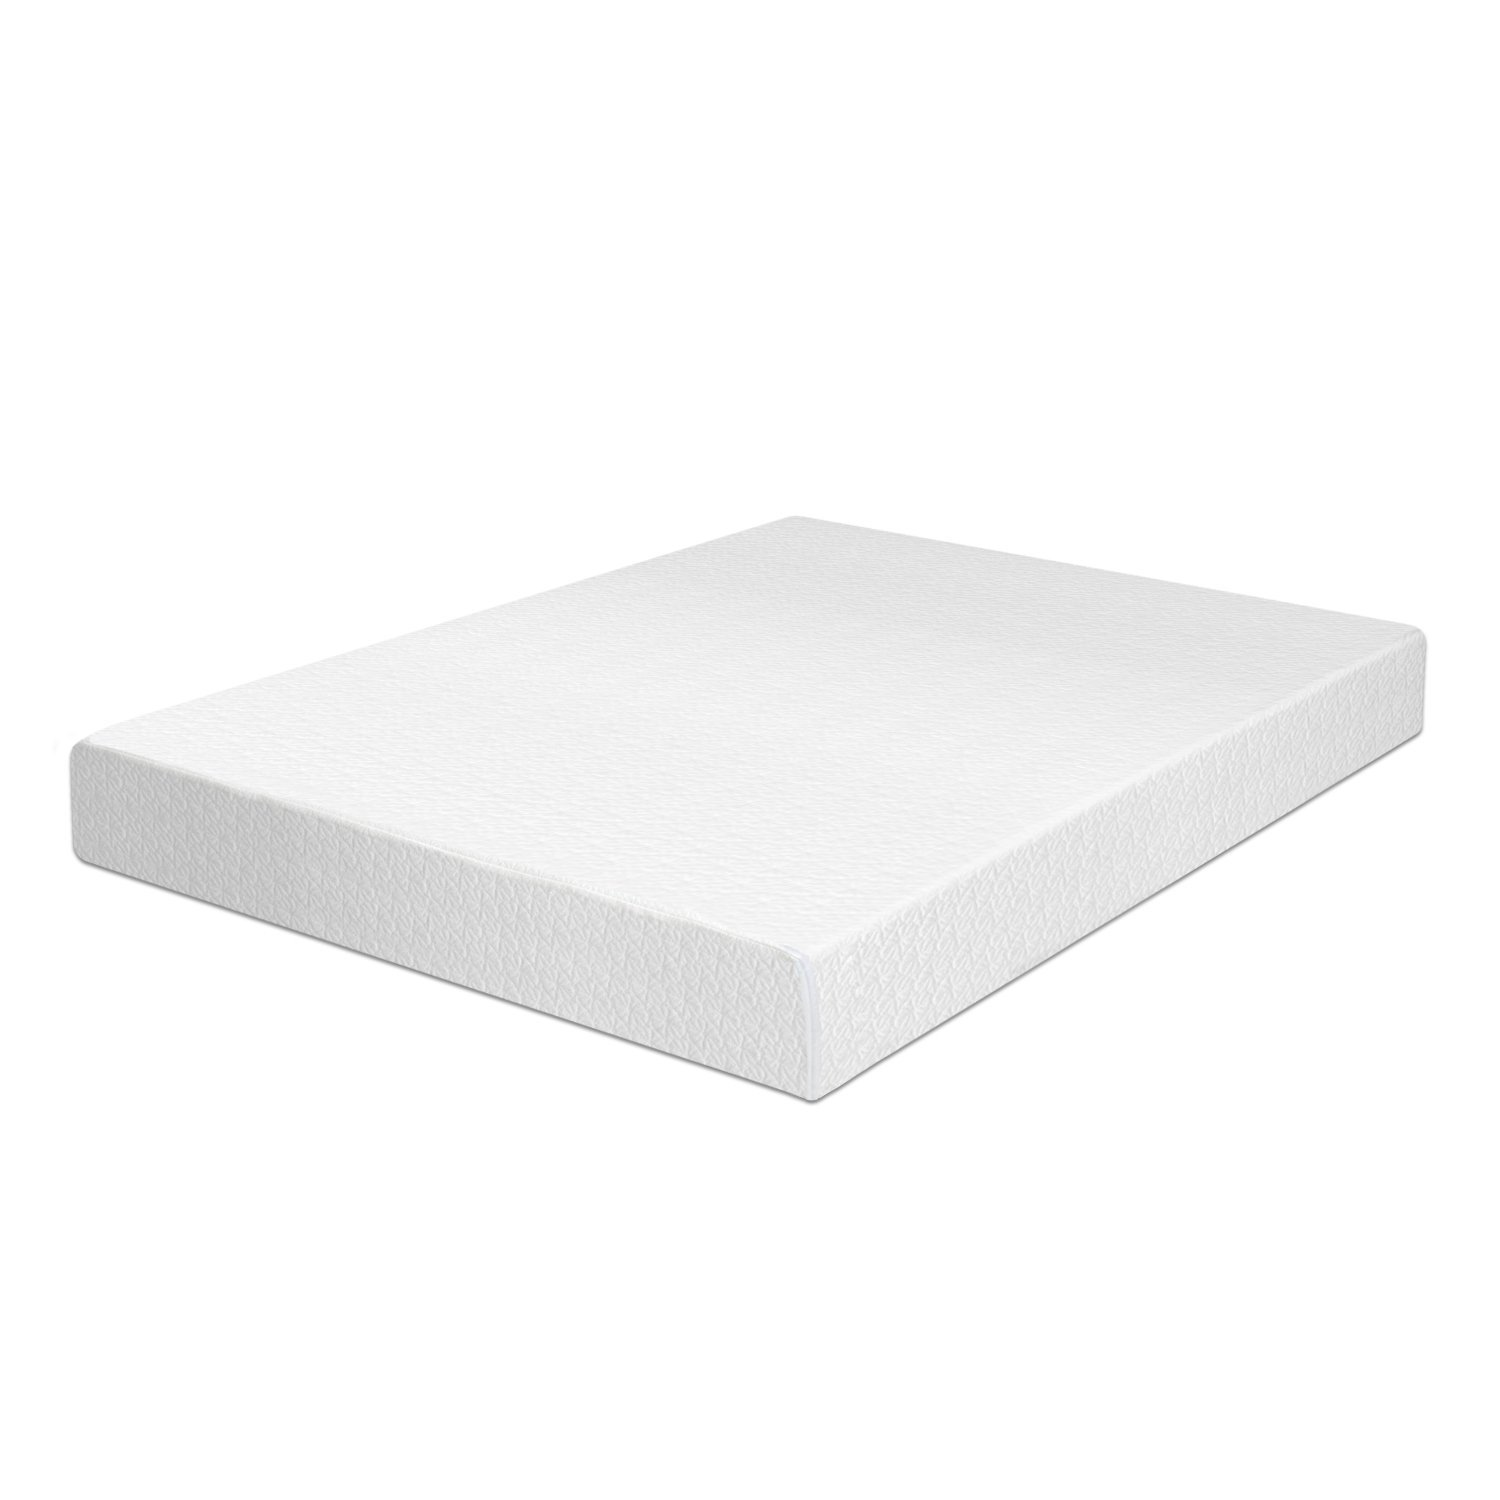 Best mattress 8 inch memory foam mattress queen review top 2 reviews product reviews by expert Memory foam mattress set